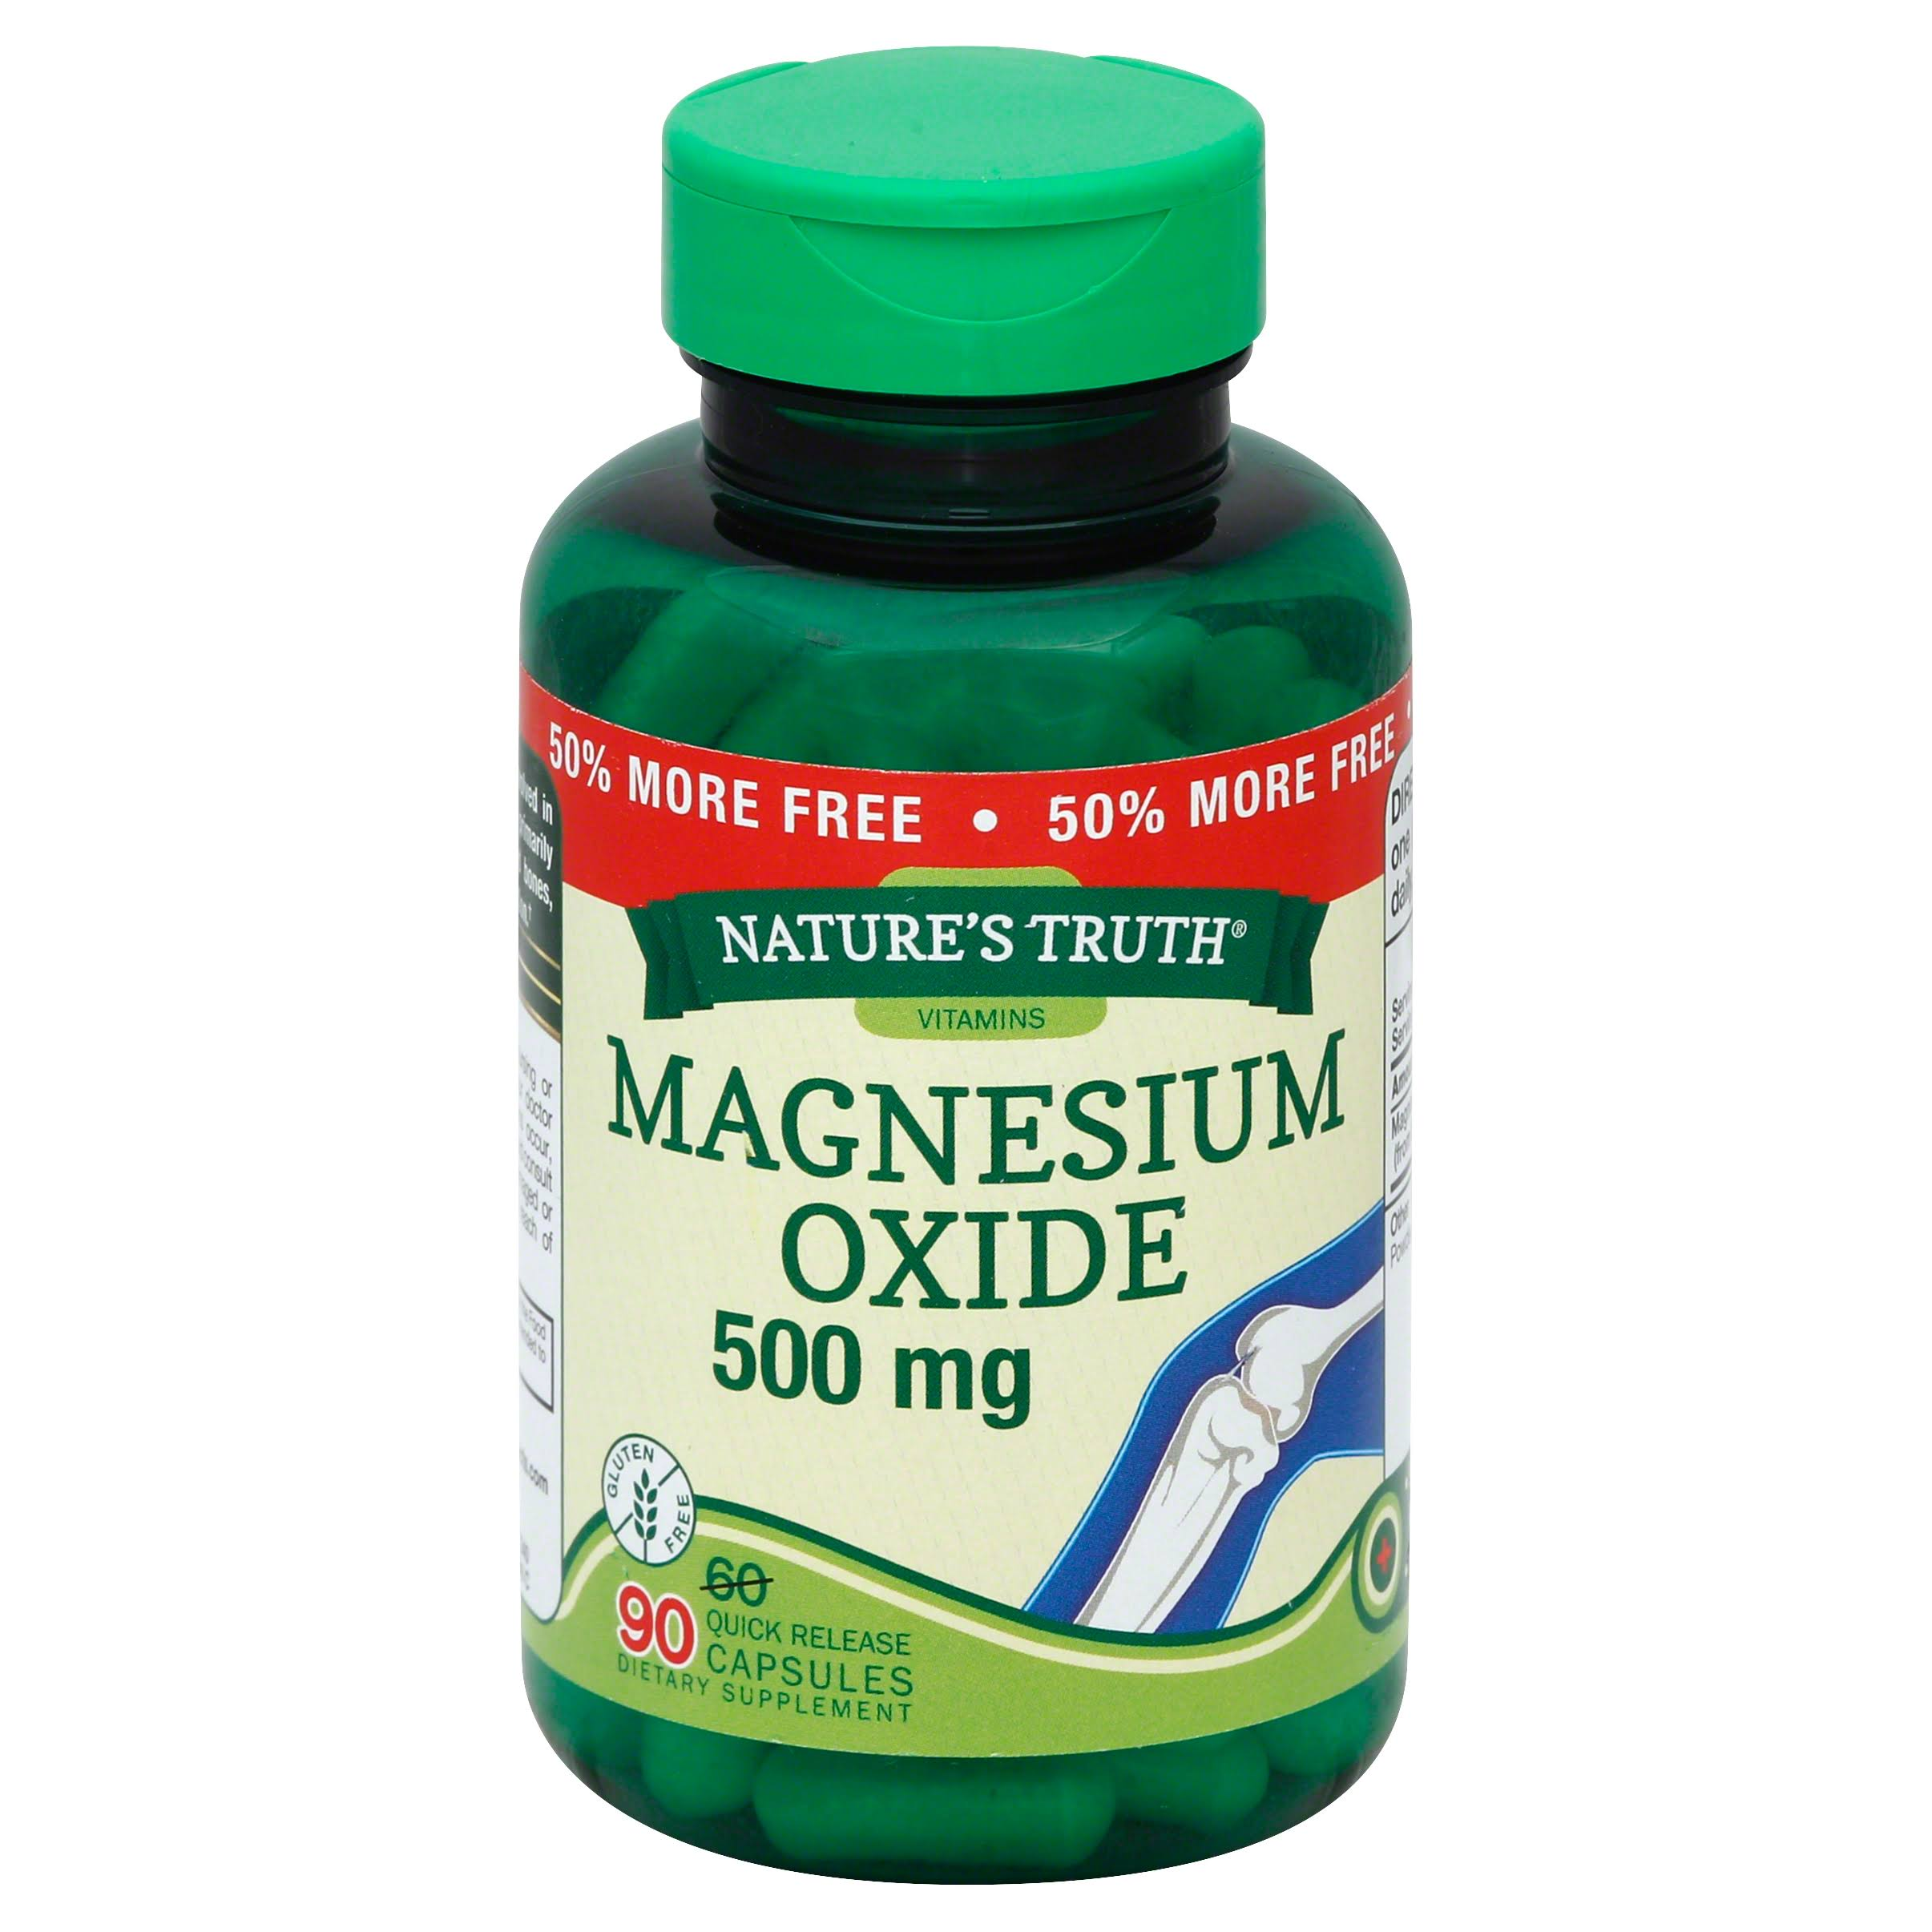 Nature's Truth Magnesium Oxide Supplement - 500mg, 90 Capsules